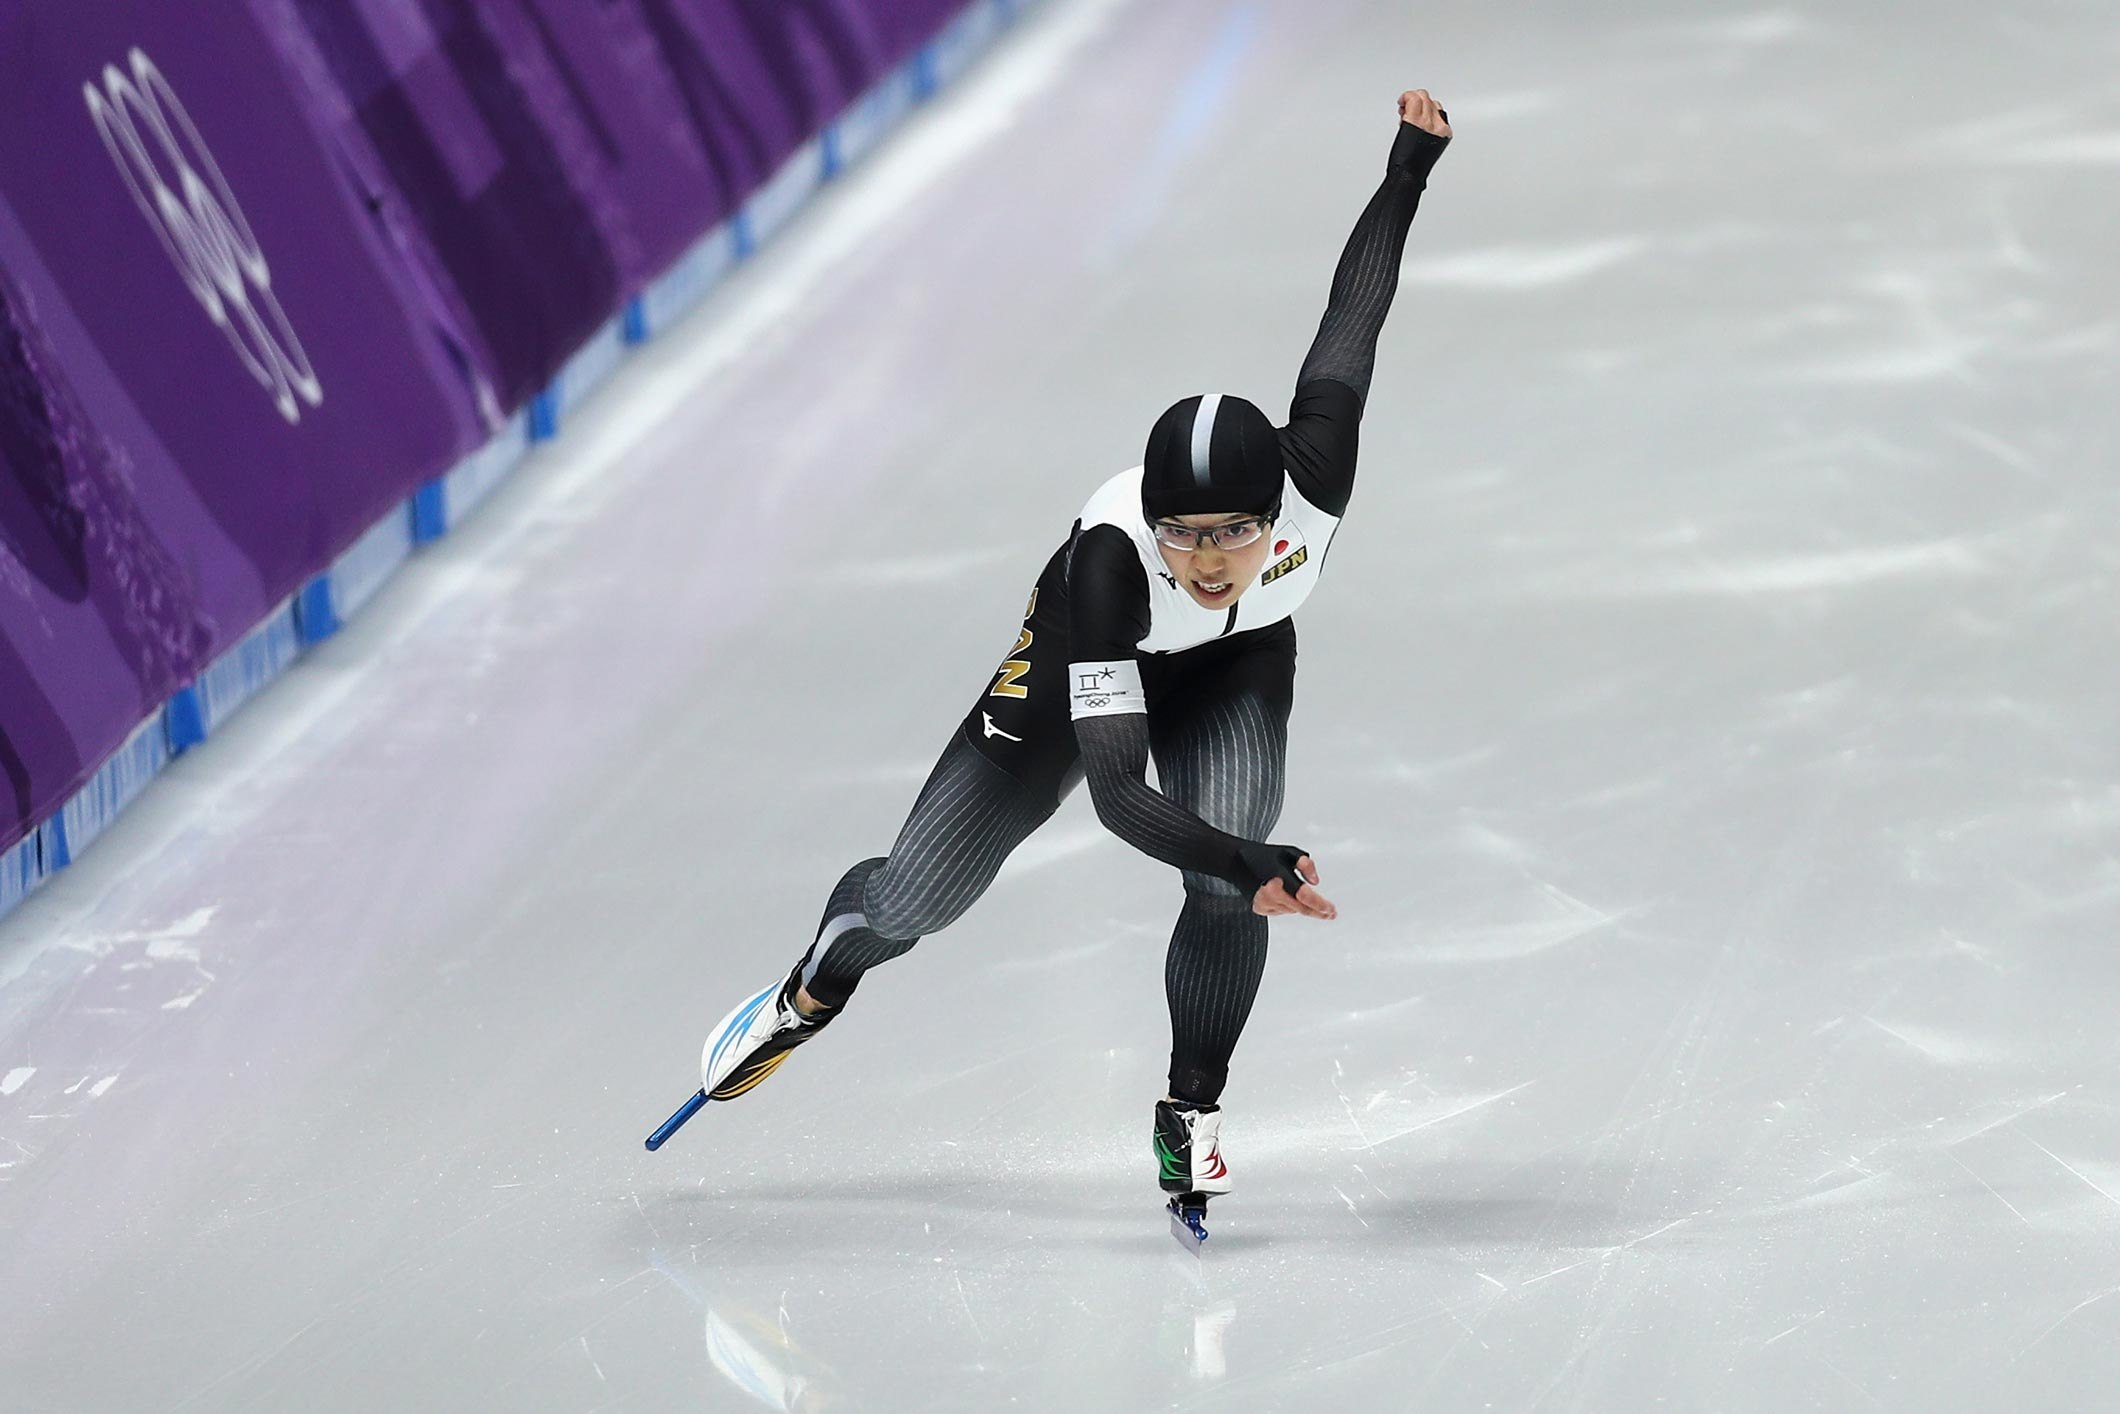 Nao Kodaira Wiki: 5 Facts To Know About The 2018 Olympics Gold Medalist Skater